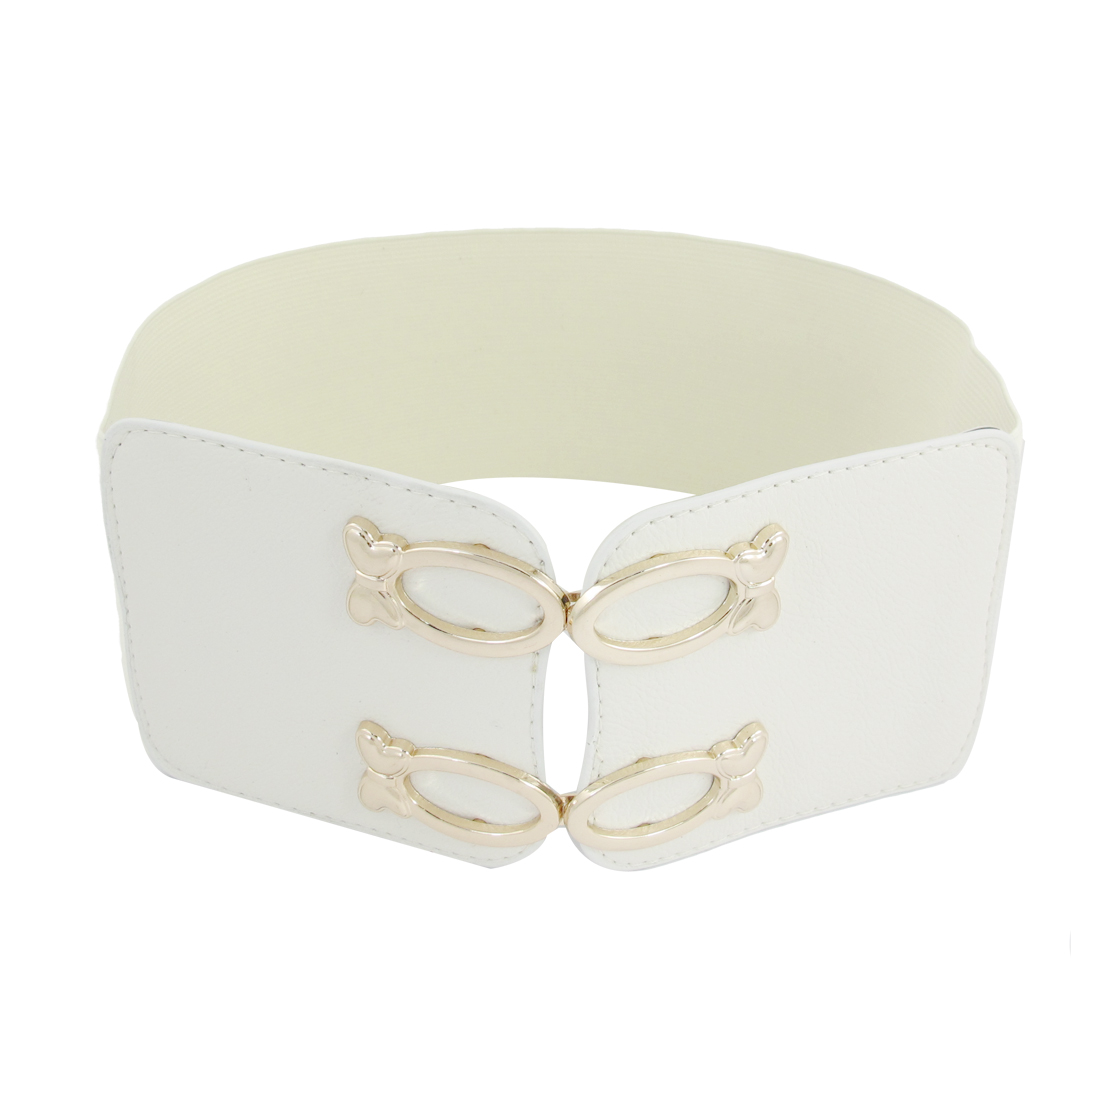 White Double Buckle Adornment Strechy Band Waist Belt Textured for Women